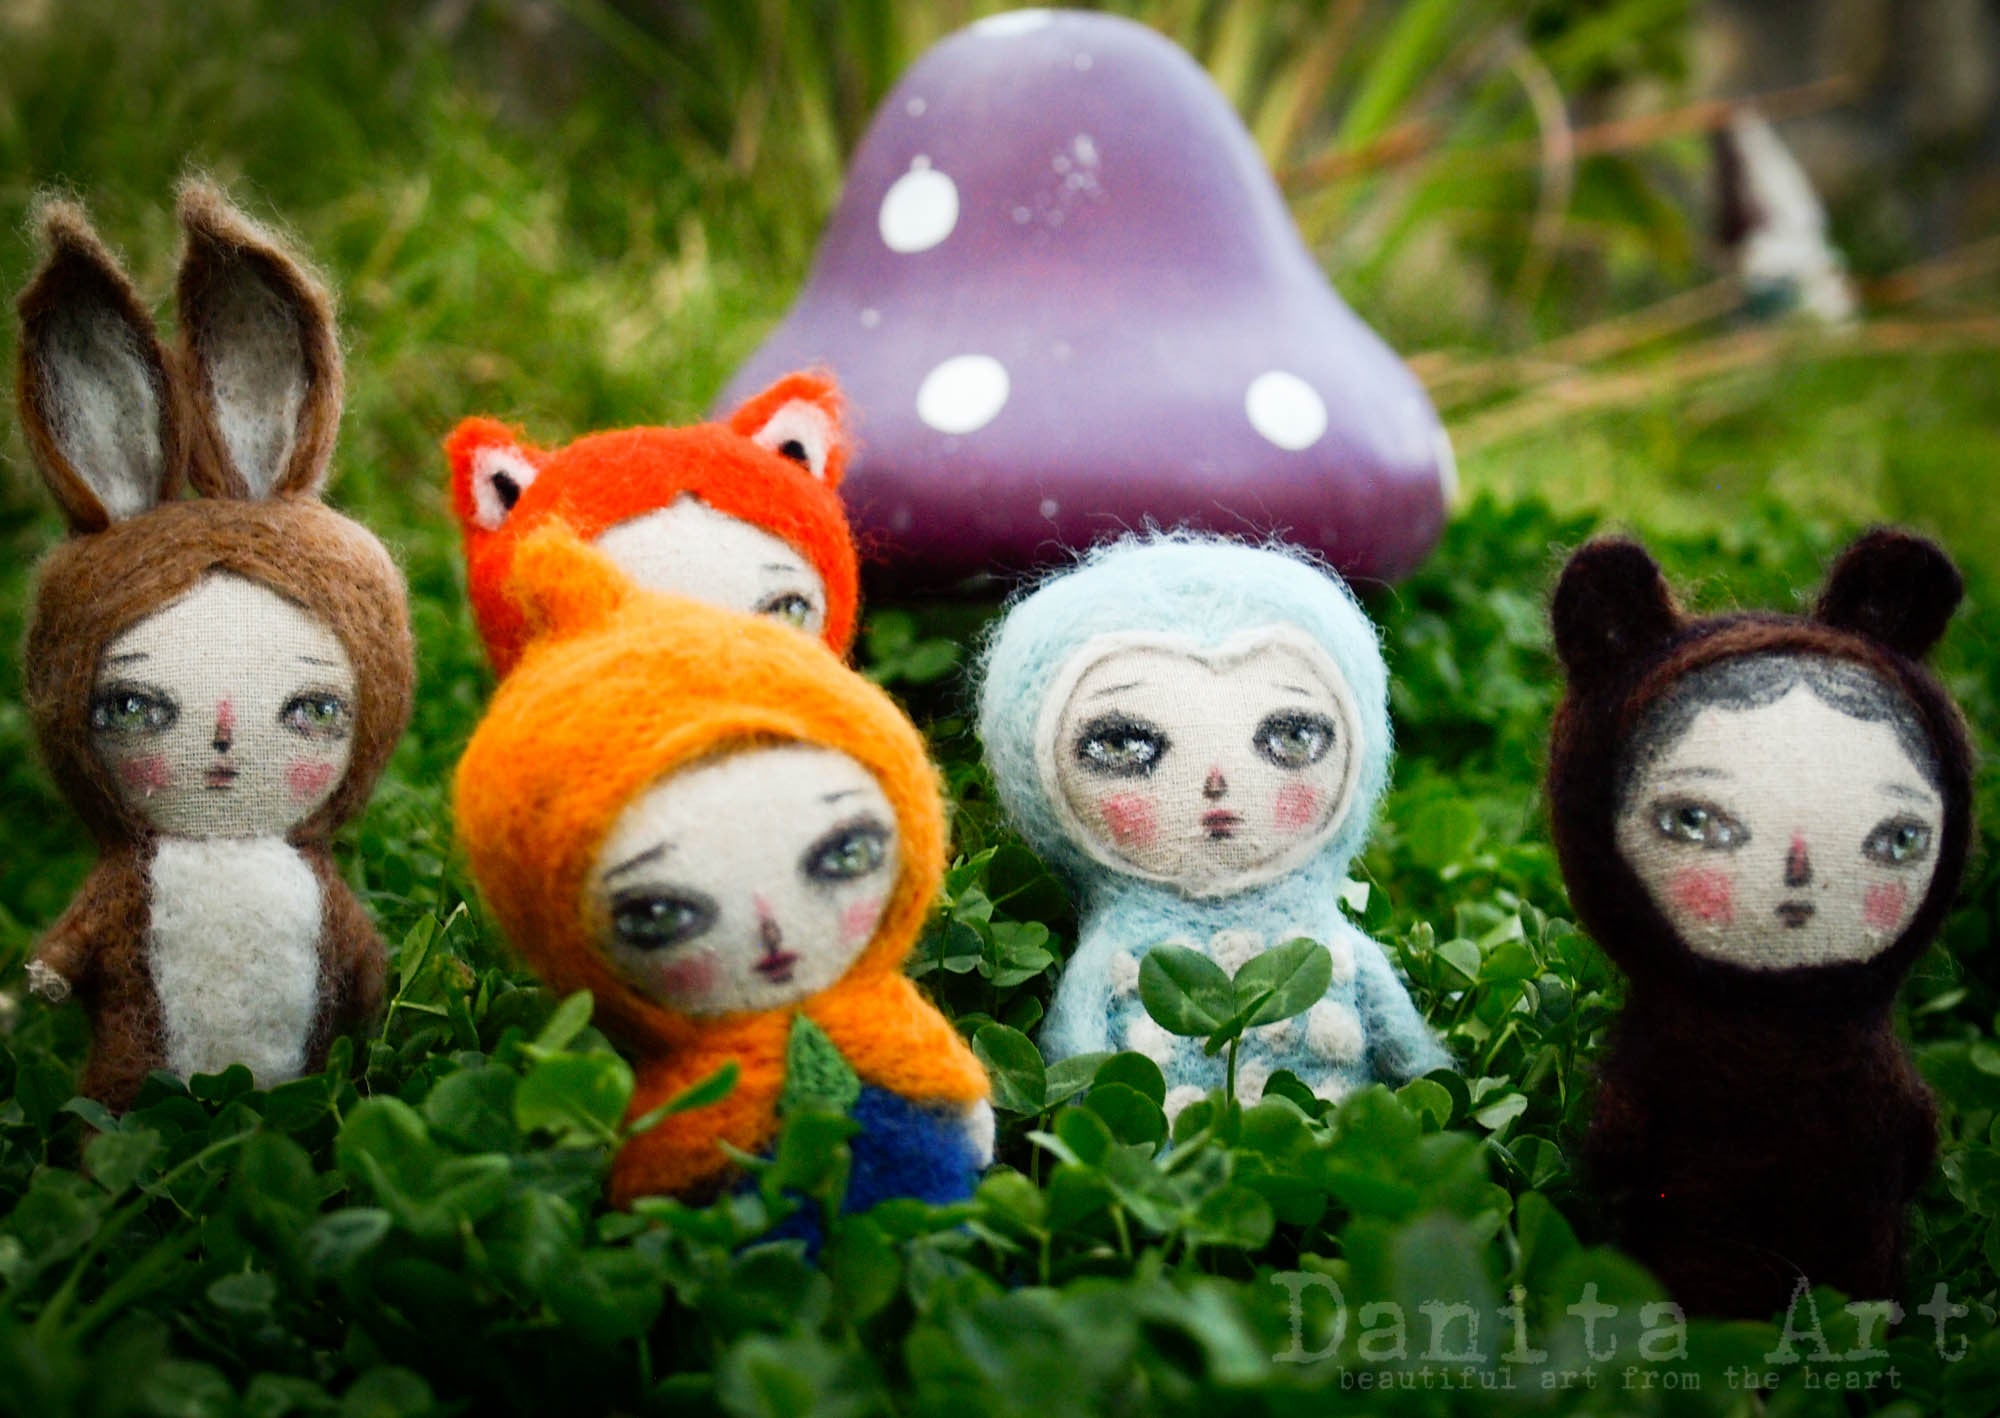 Leo the owl, Miniature Dolls by Danita Art